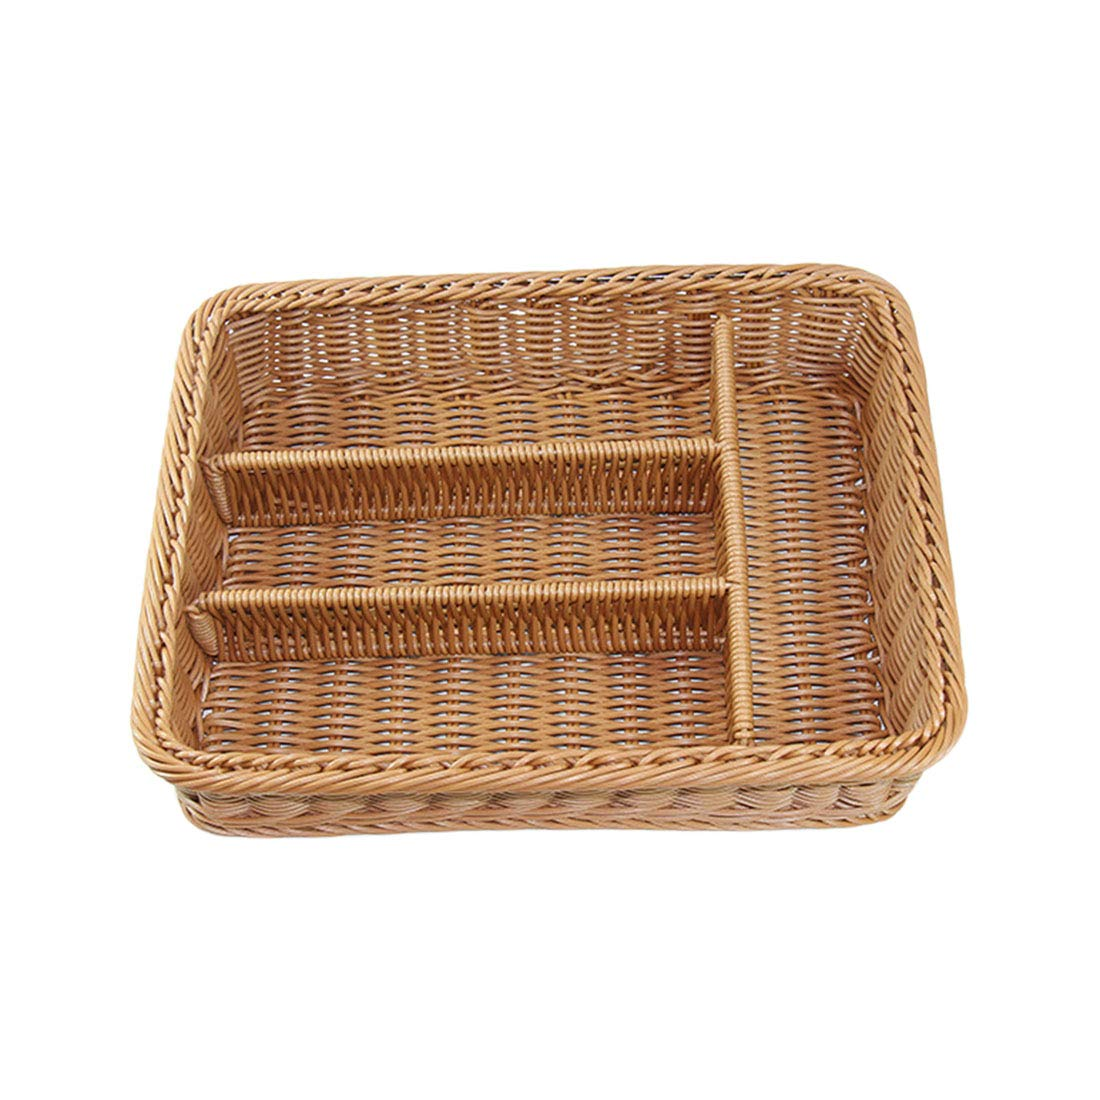 Qianle Rattan Cutlery Utensil Organizer Display Trays Table Basket for Home Organization Solutions(Rattan/4 grids/#1)